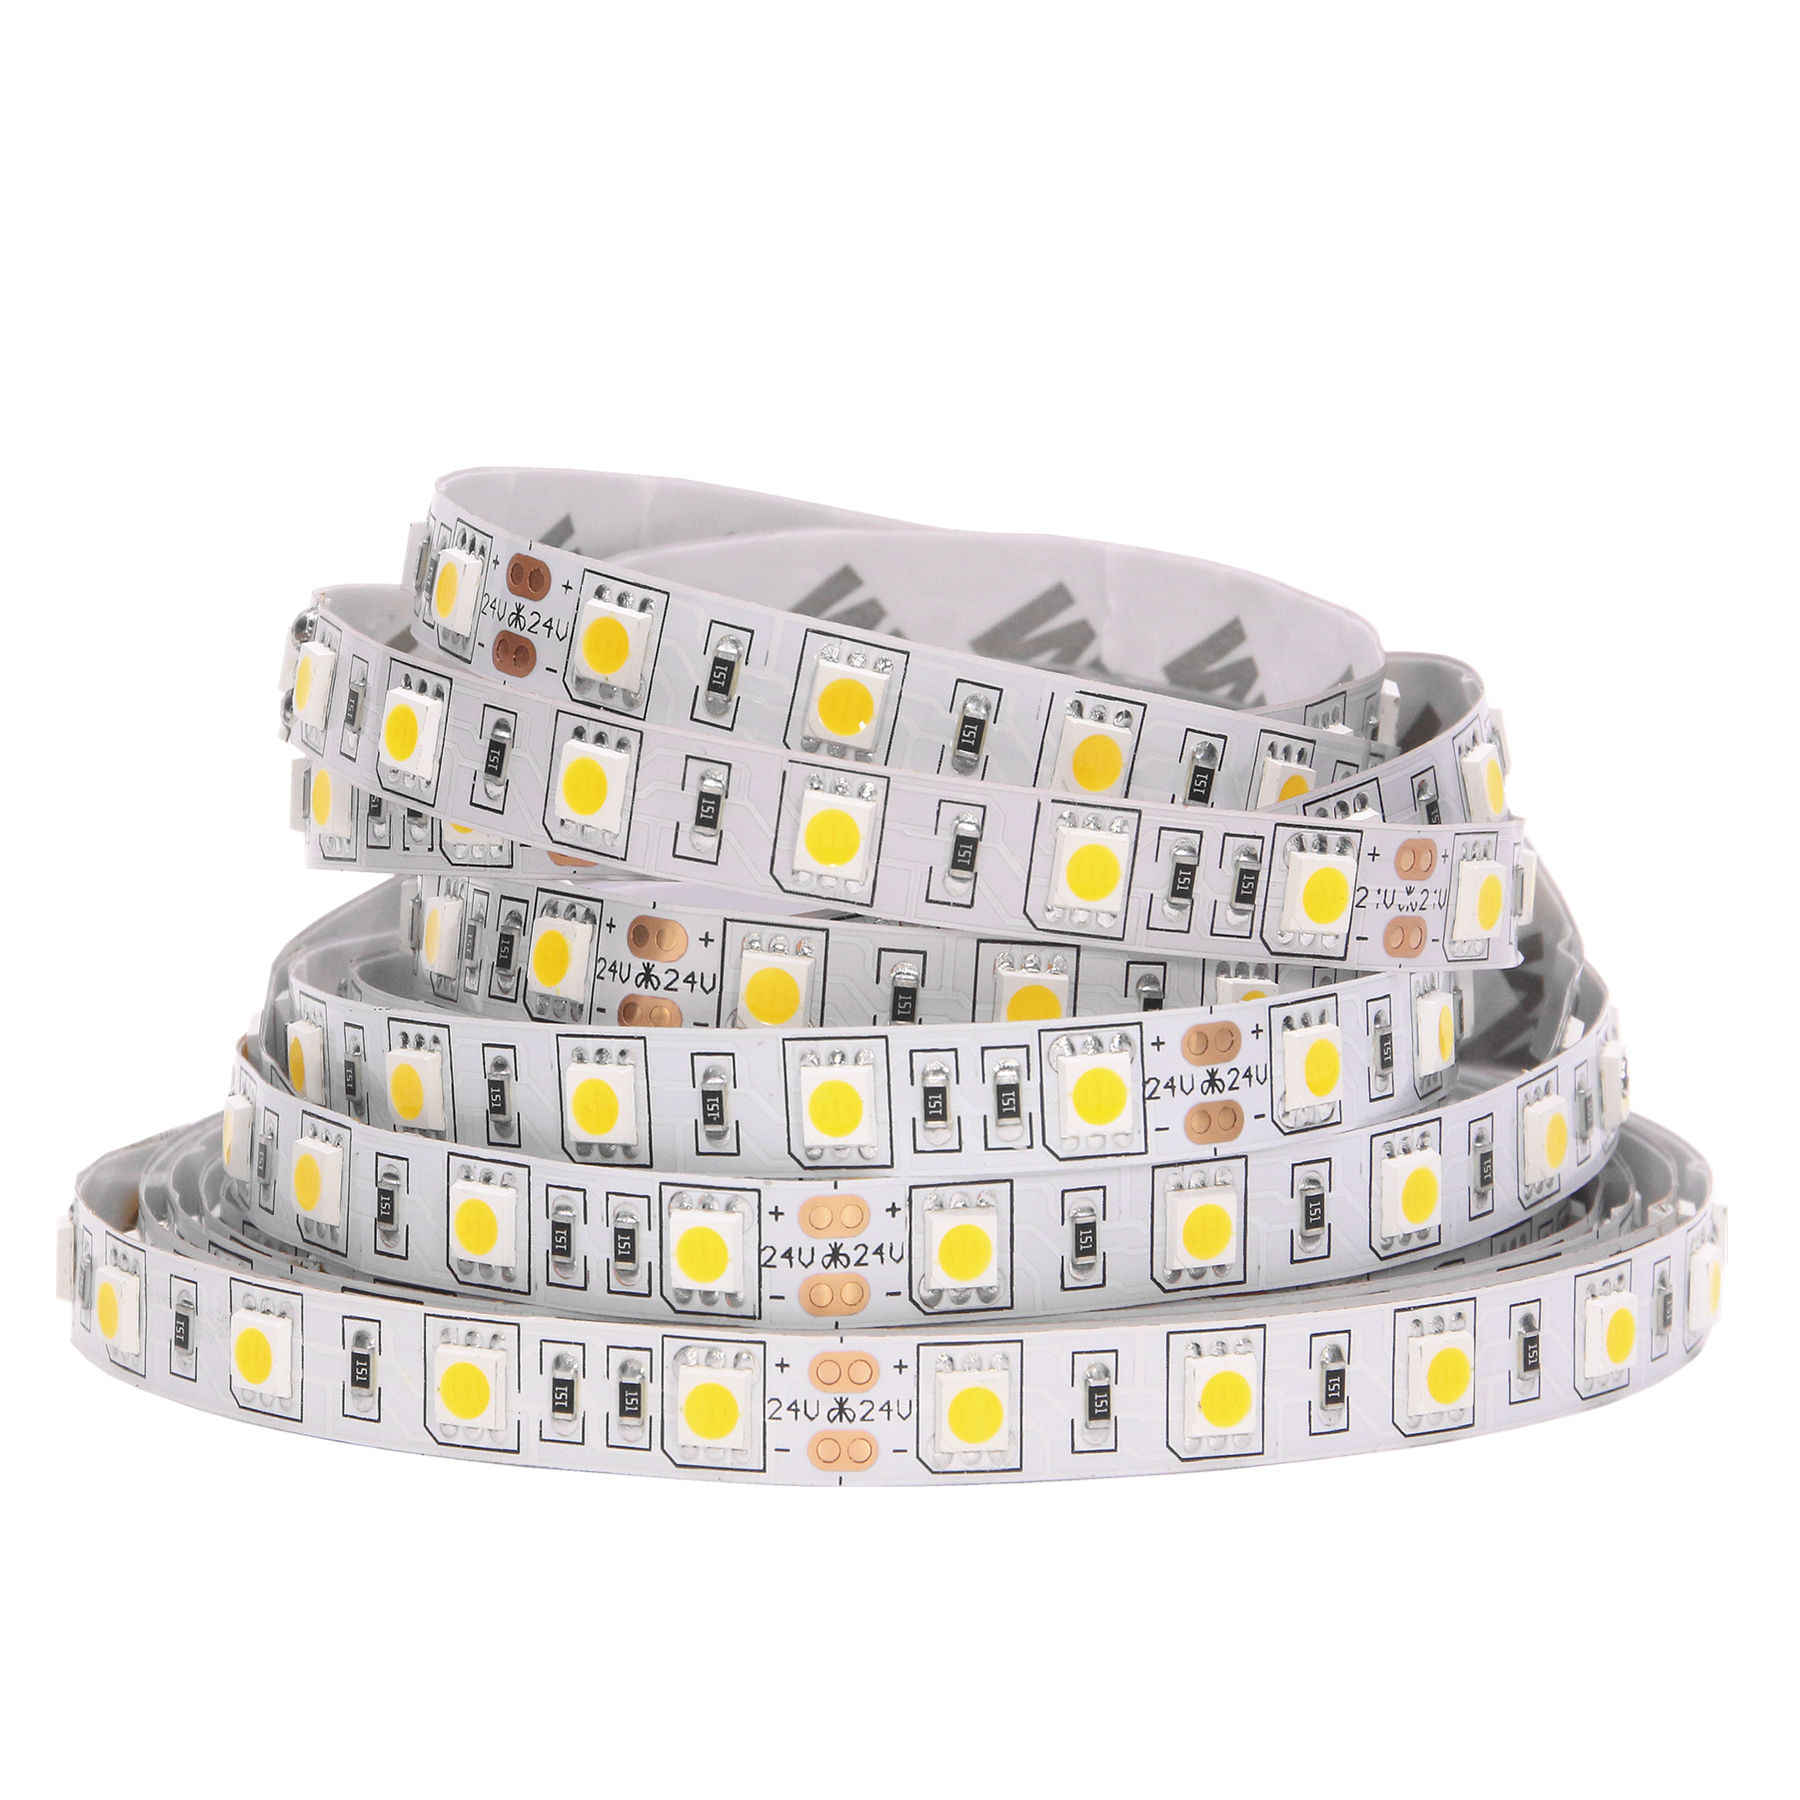 SMD 5050 RGB LED Strip Tahan Air 5M 300LED DC 12V RGBW Rgbww Fita Lampu LED Strip Fleksibel Neon tape Luz Monokrom